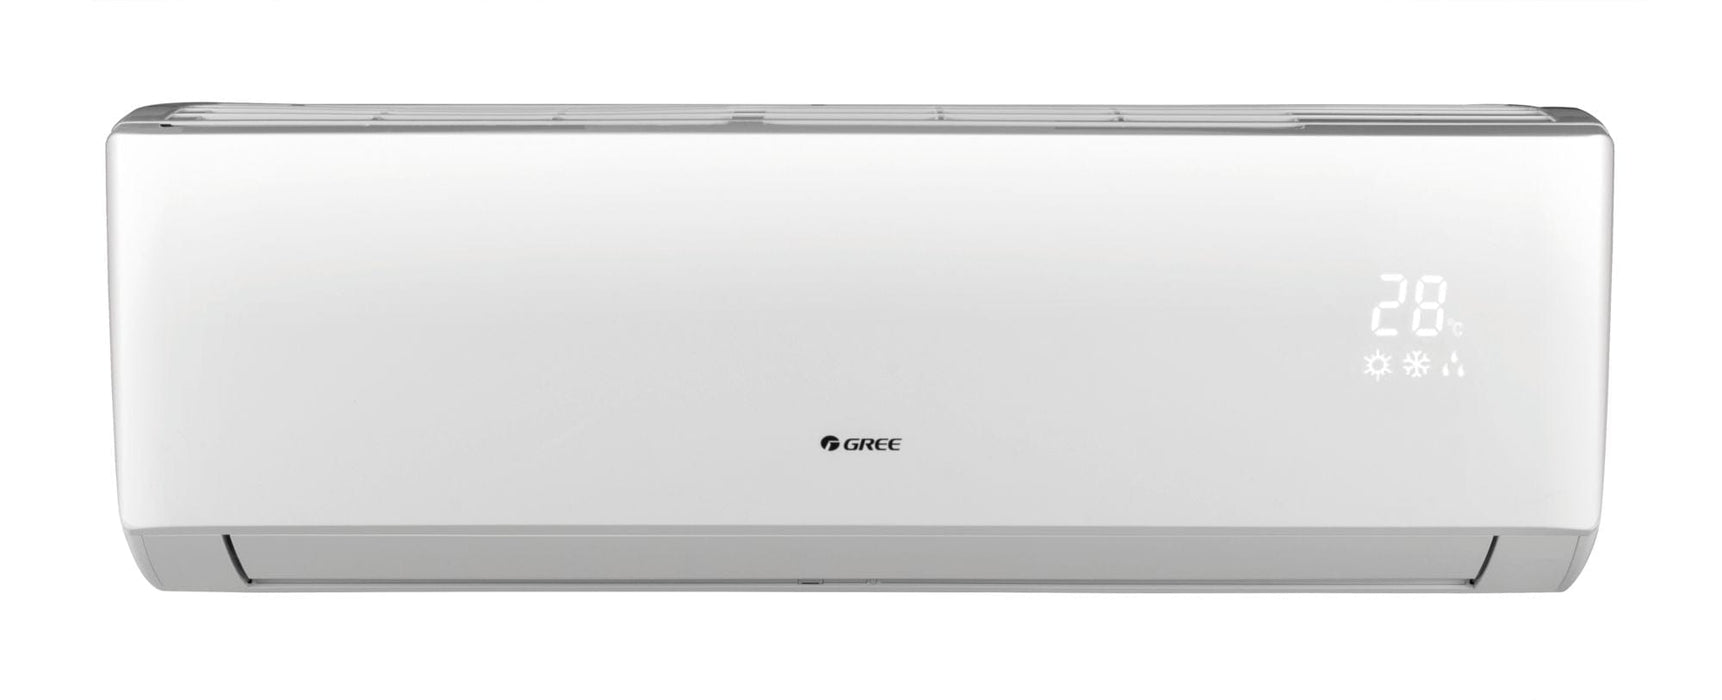 Gree 12,000 BTU 22 SEER VIREO+ Wall Mount Ductless Mini Split Indoor Unit 208-230V